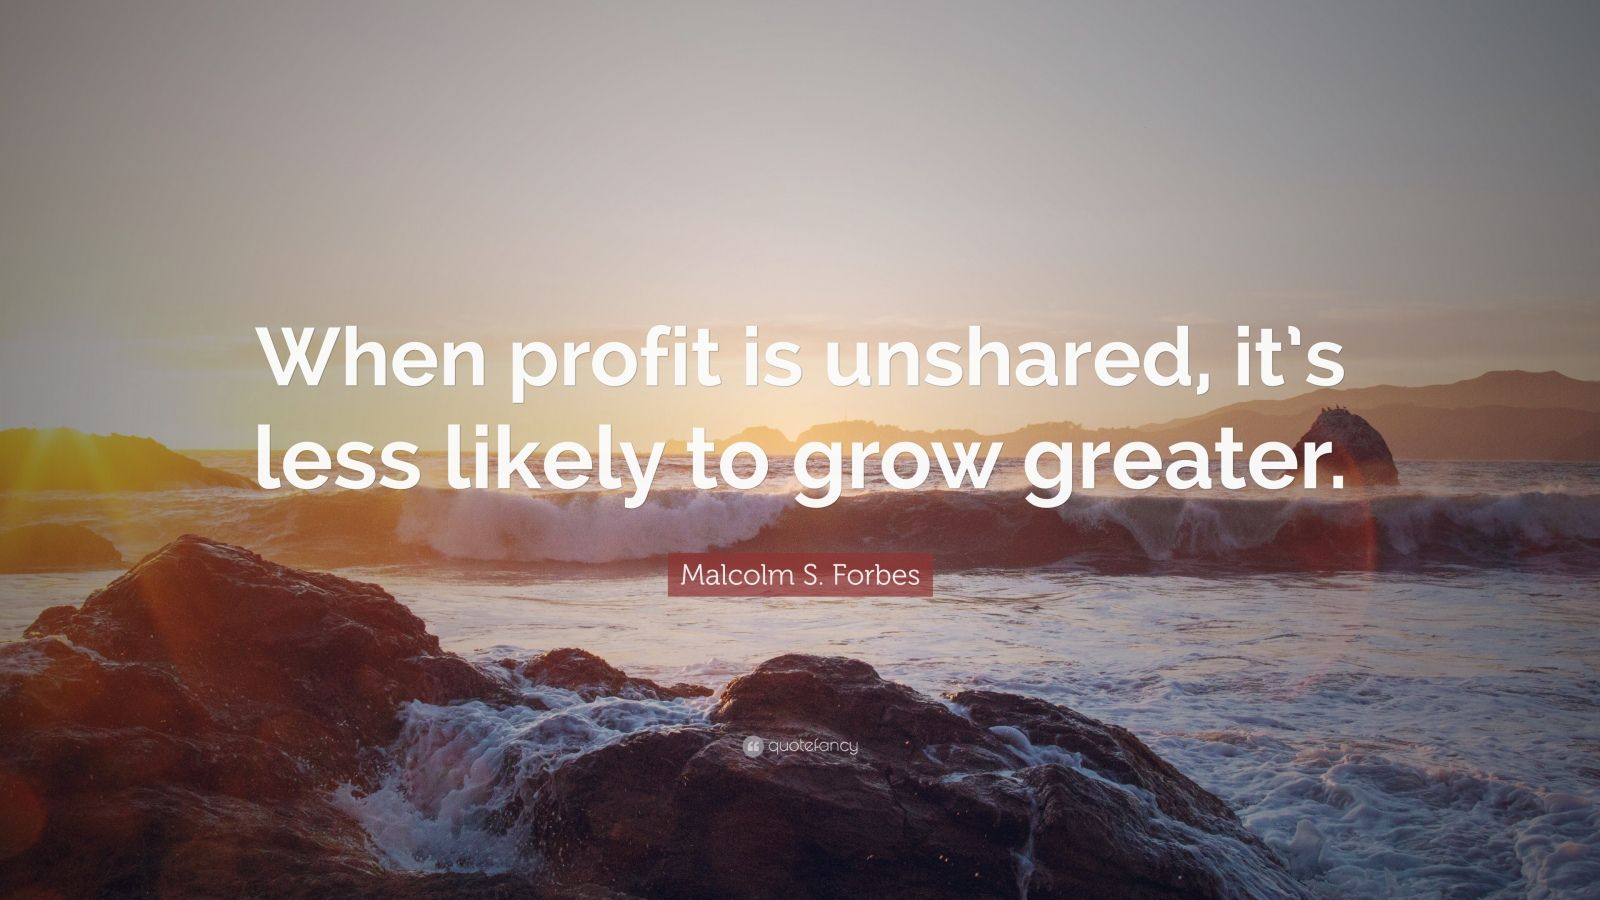 """Malcolm S. Forbes Quote: """"When profit is unshared, it's less likely to grow greater."""""""